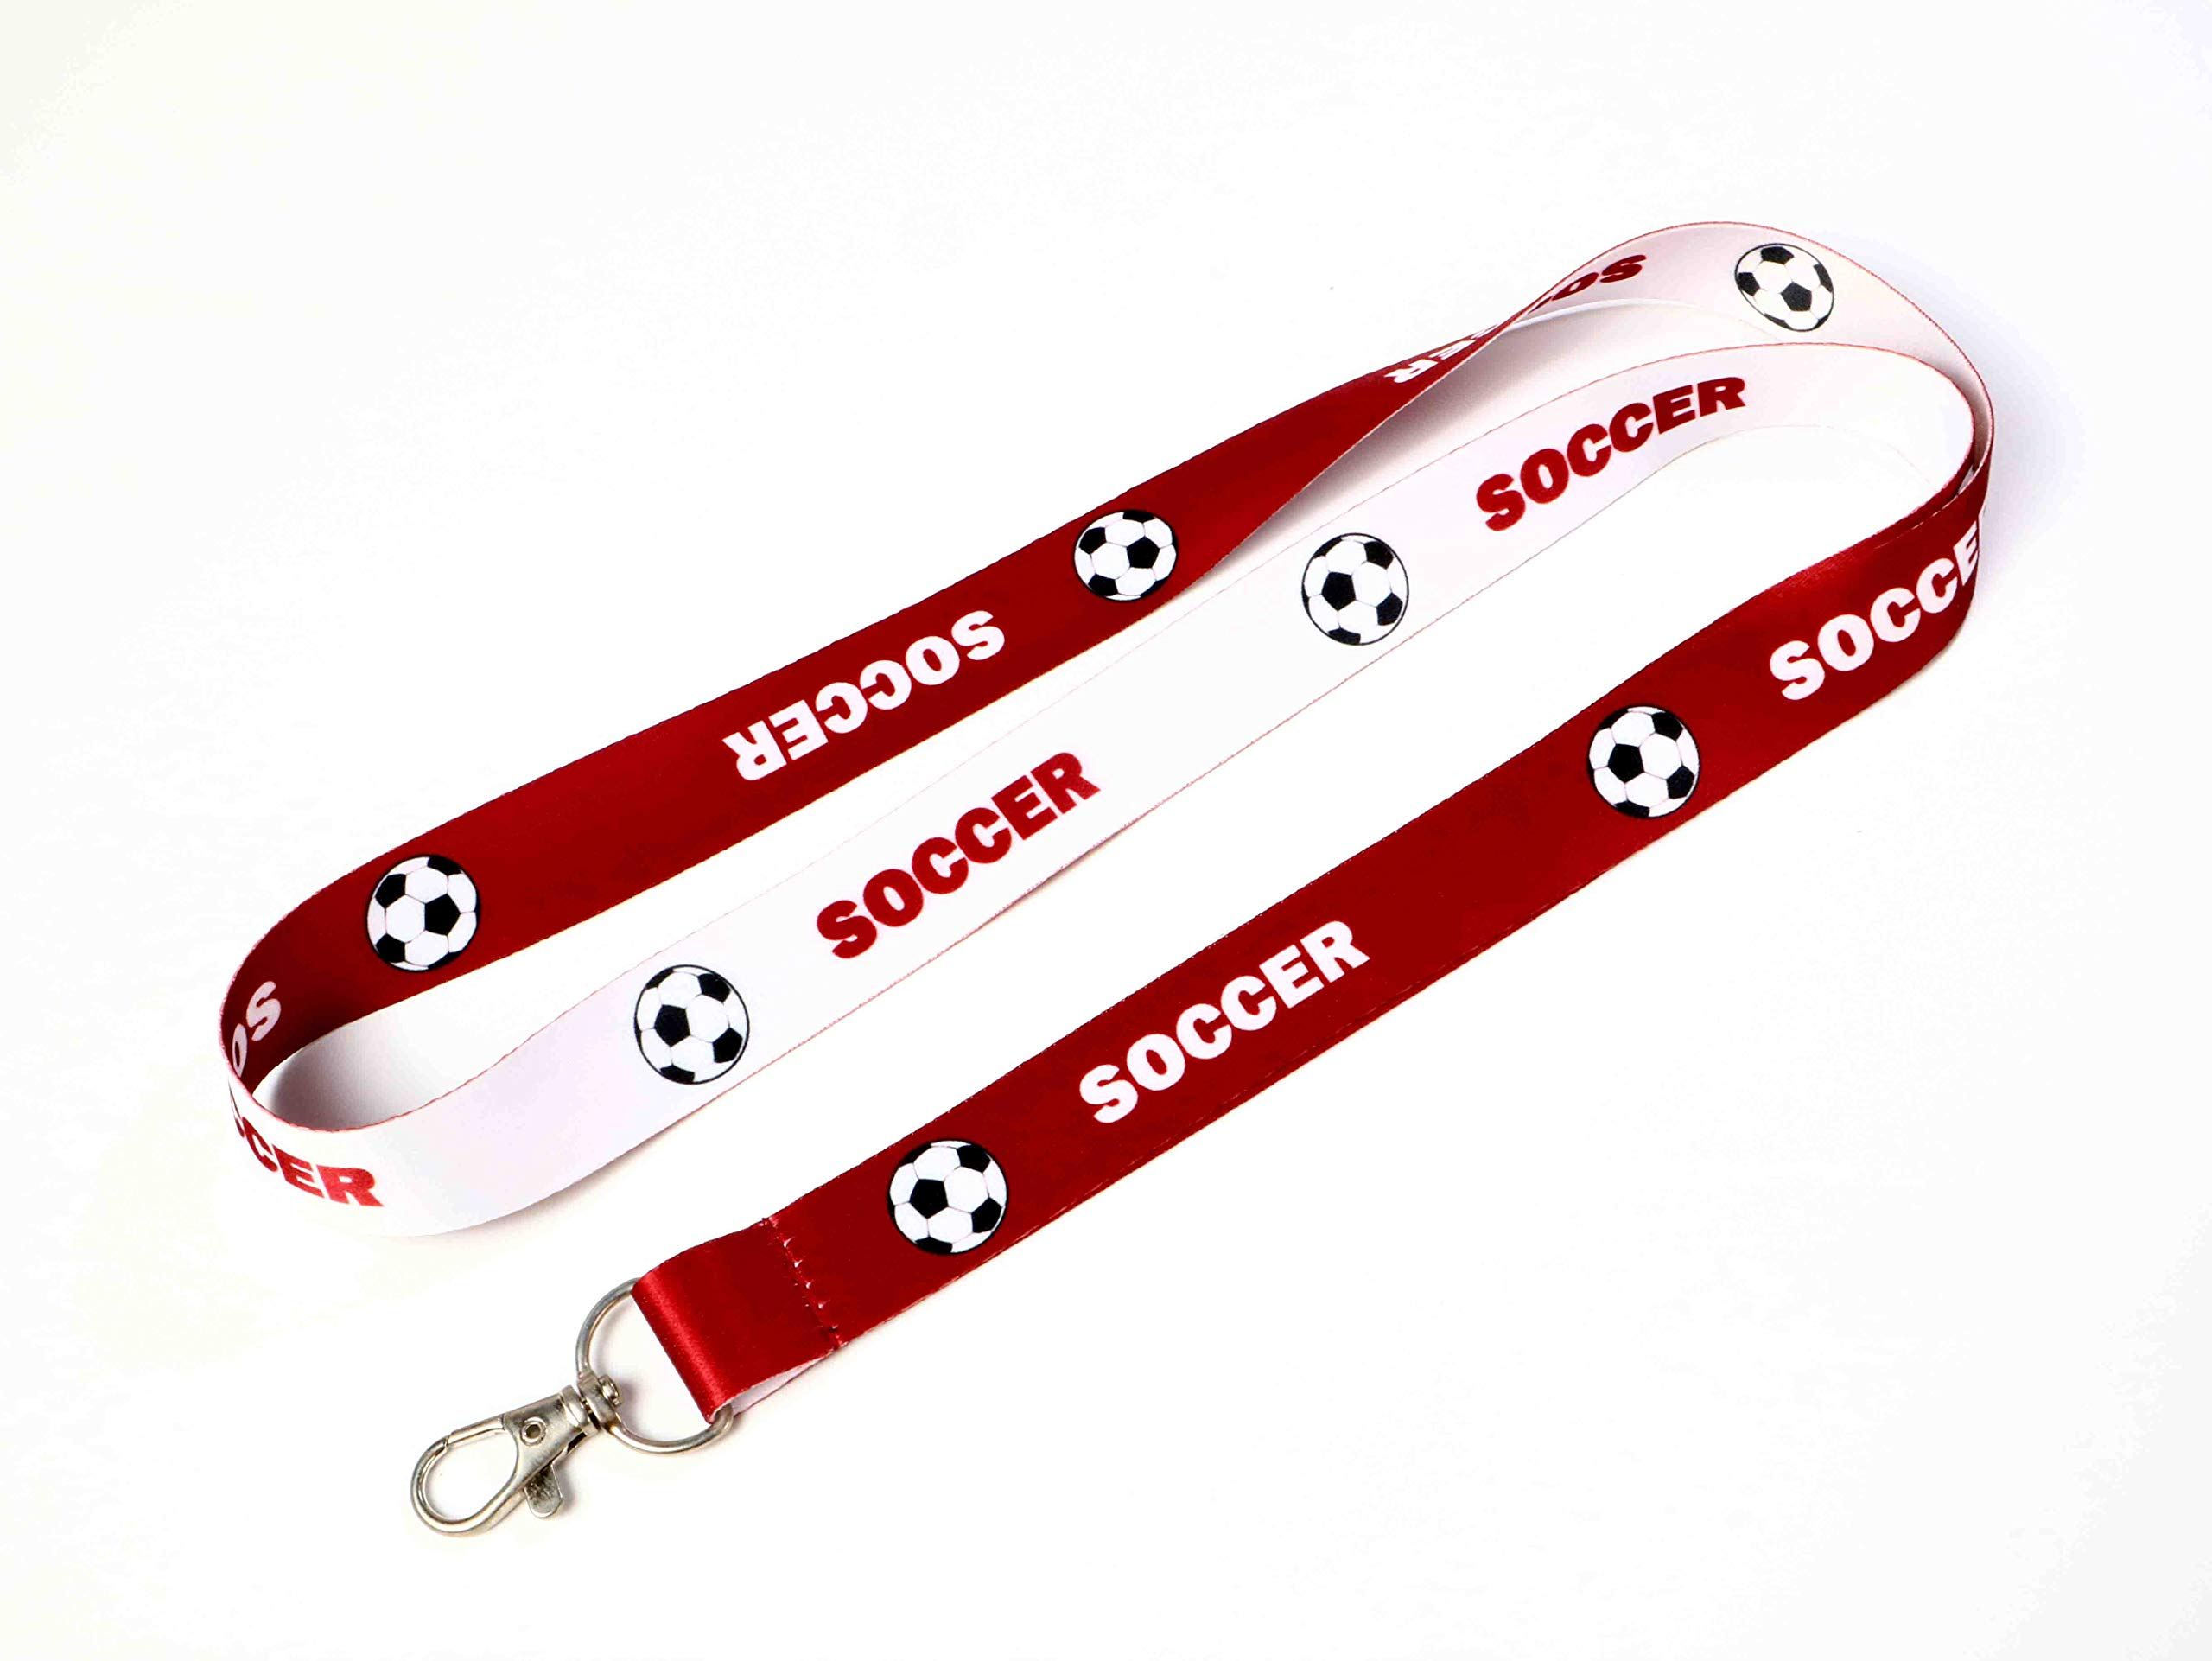 RockNerdy - Soccer Reversible Lanyard Keychain w/Clasp - ID Lanyard for Keys Badge USB Whistle - Sports Fan ID Holder Keychain for College Coach Referee Kids Mom Dad (Maroon or White, 25 Lanyards) by Lanyards and More